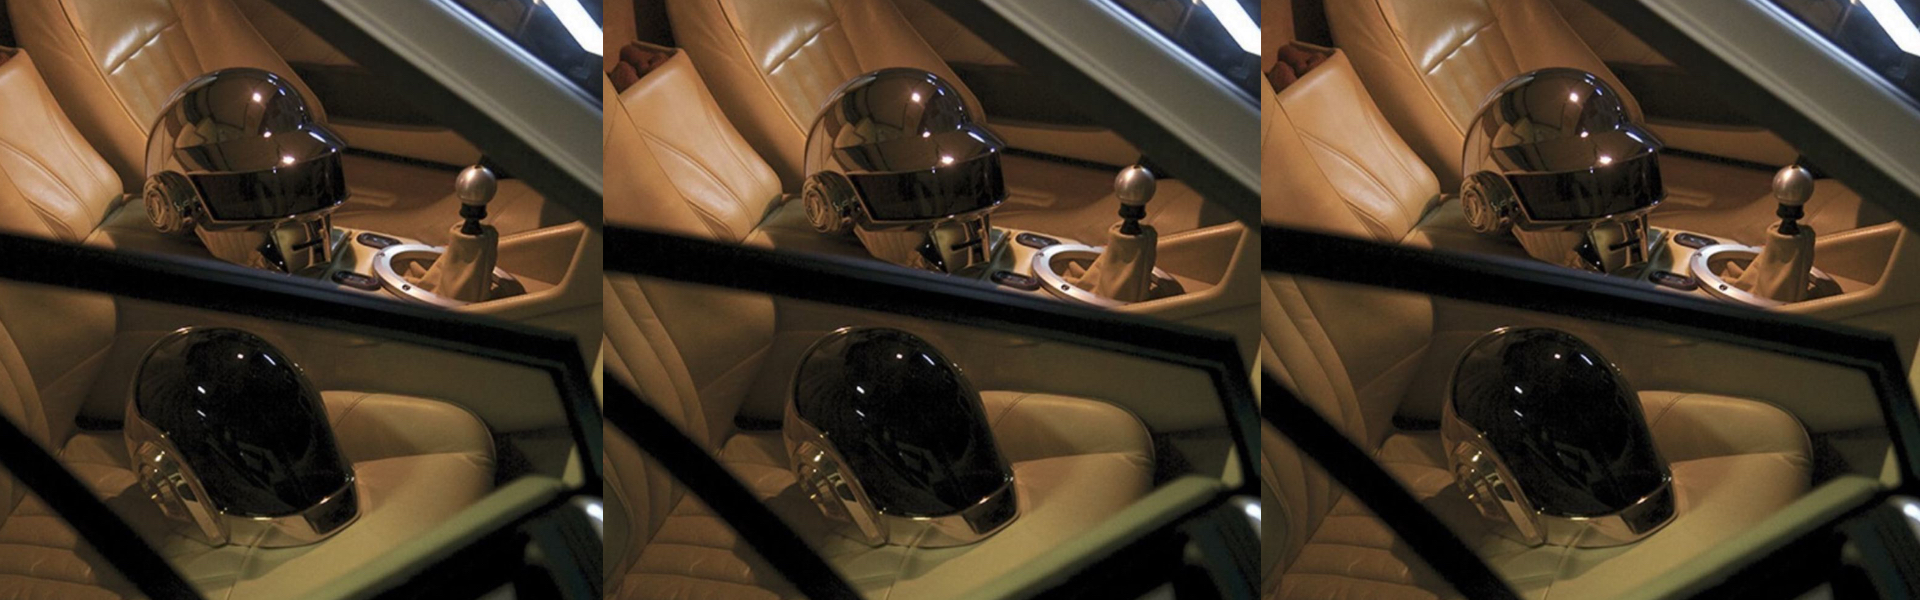 After 28 years of acclaimed albums & emblematic jackets, Daft Punk is splitting up.